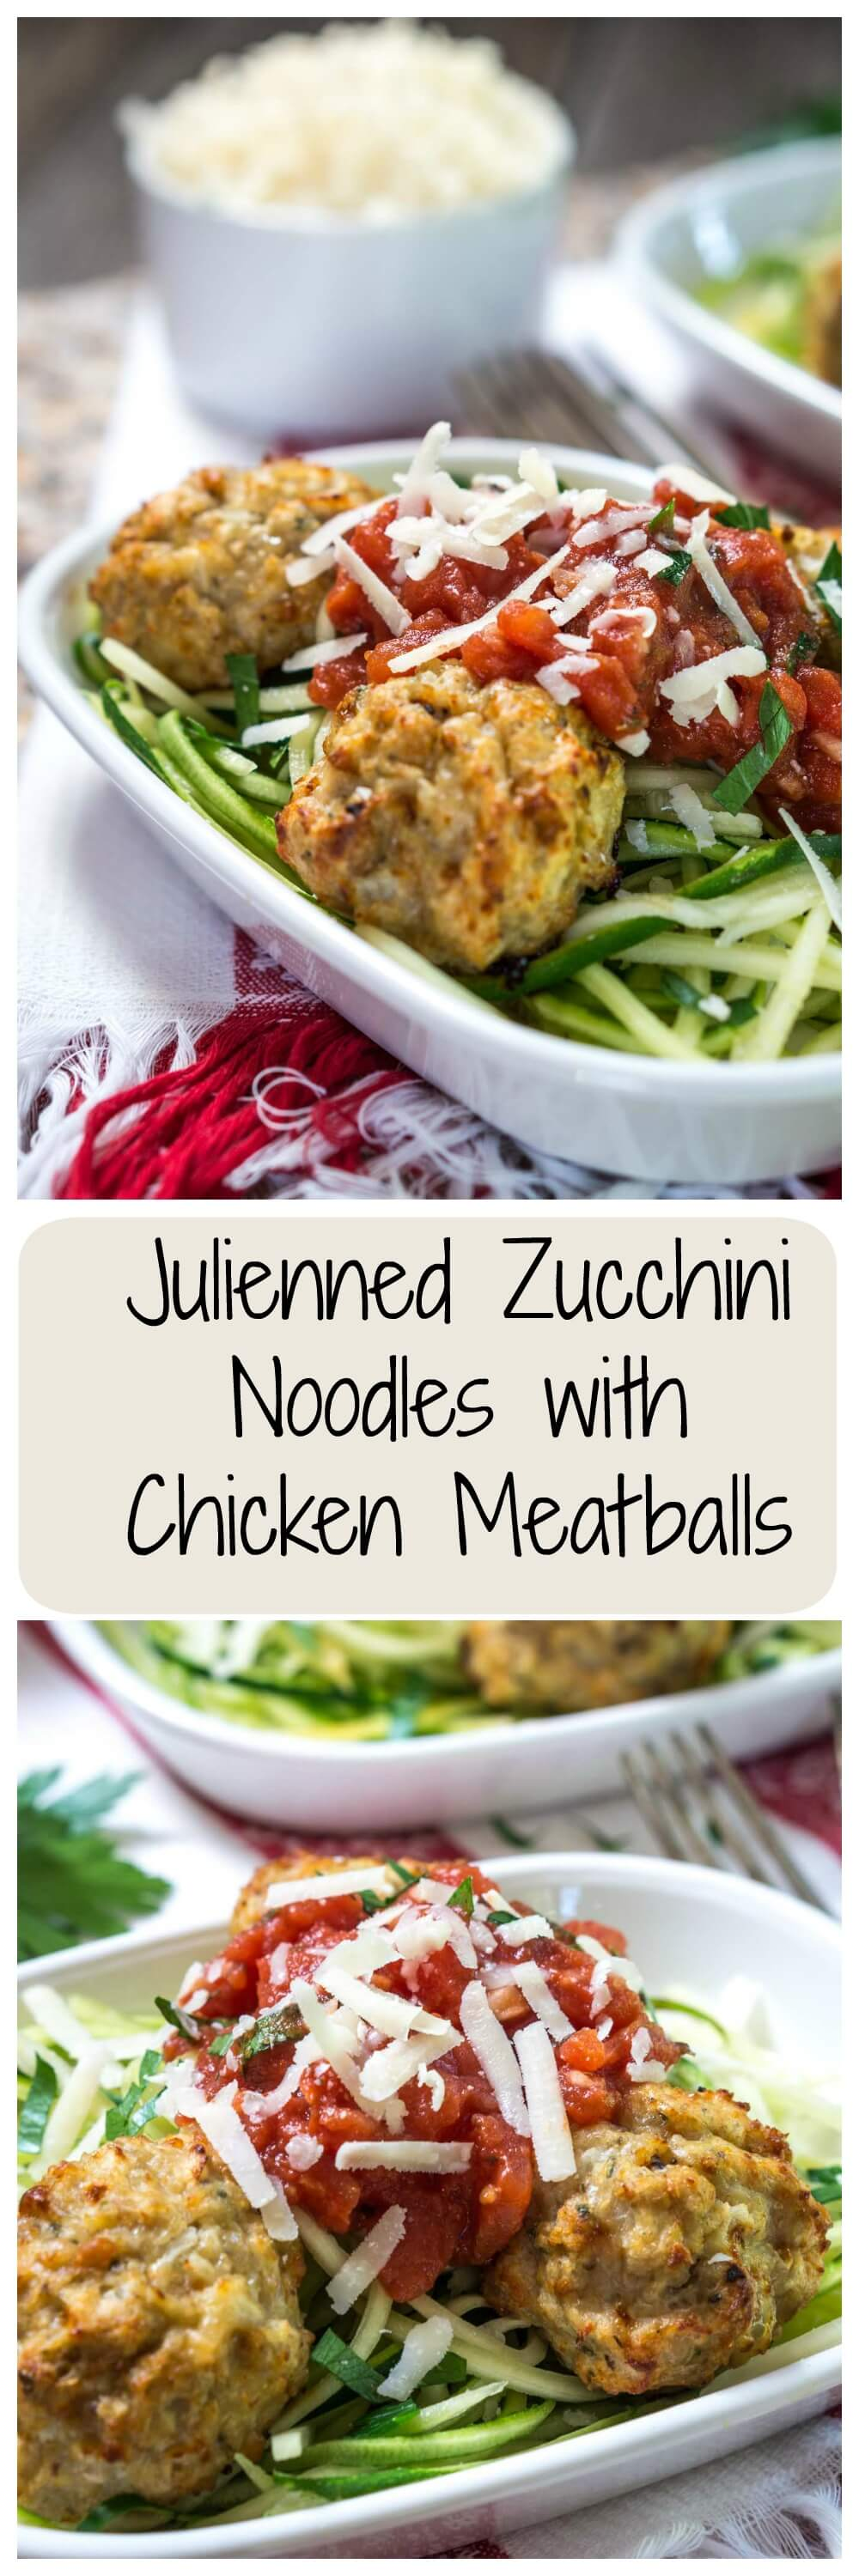 Julienned Zucchini Noodles with Chicken meatballs is a healthier lite dish that can be made in under 30 minutes. It has an Italian flair that pasta lovers will adore. | HostessAtHeart.com